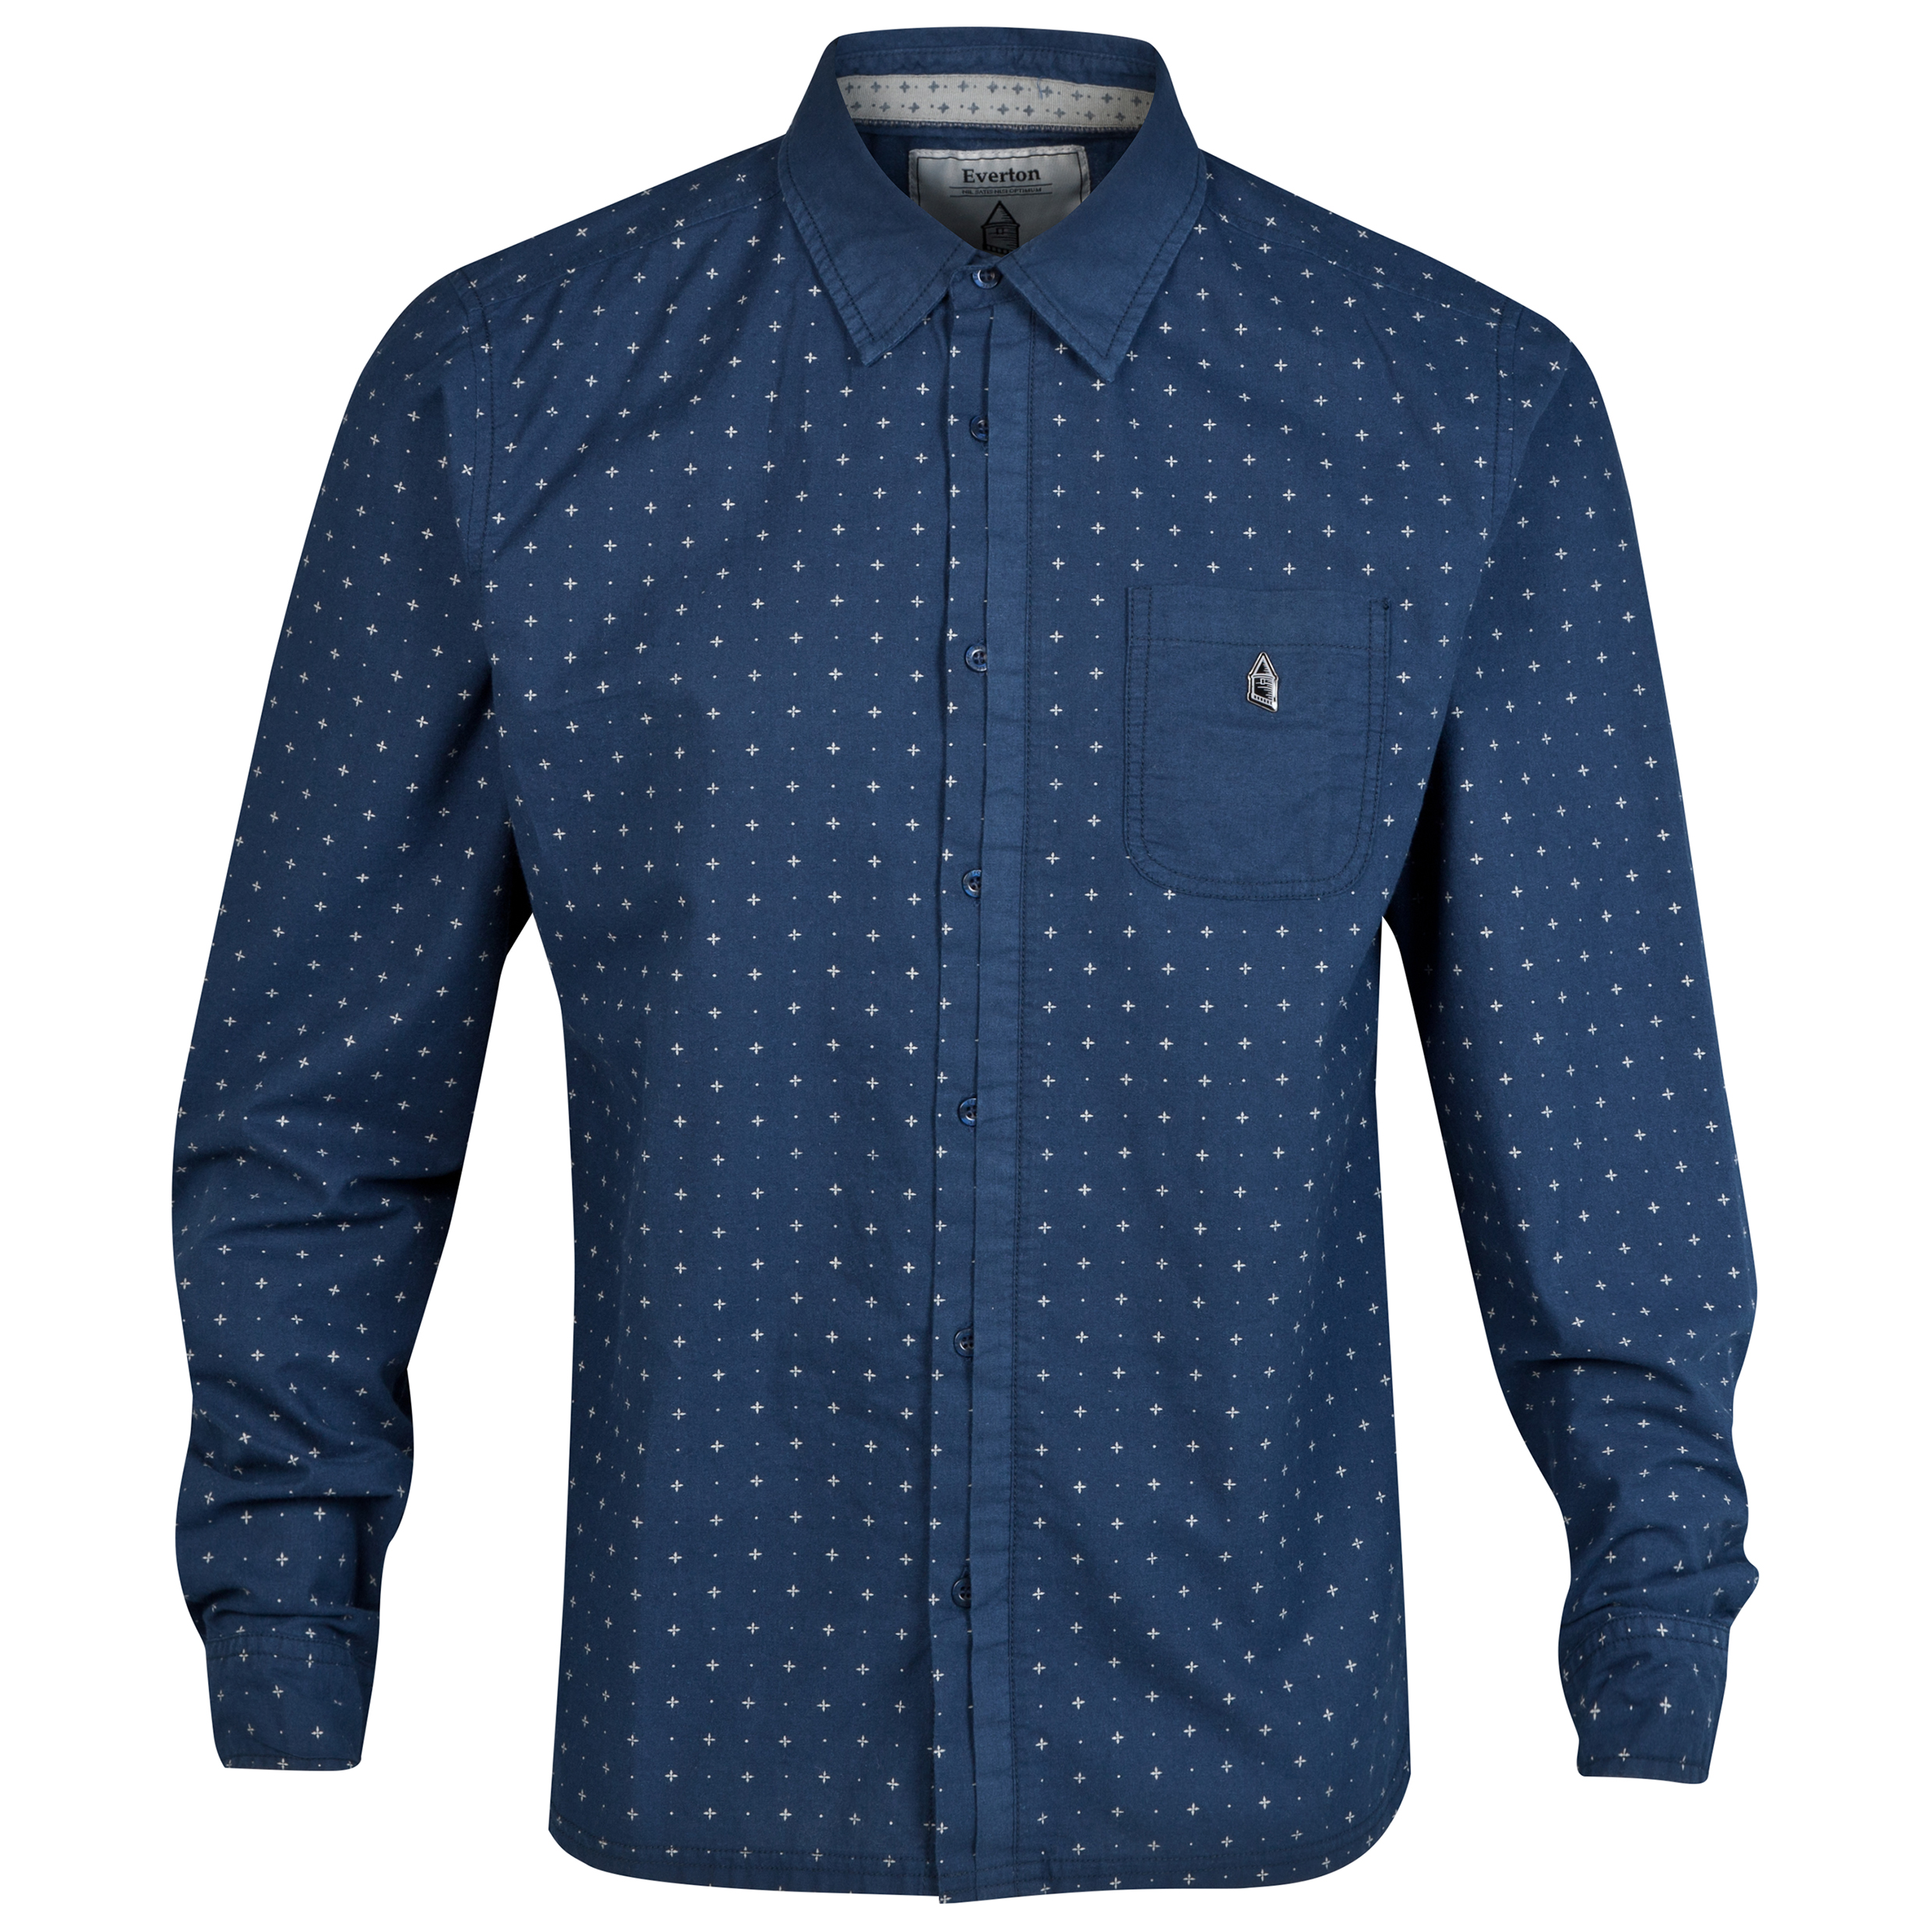 Everton Pattern Shirt - Navy - Mens